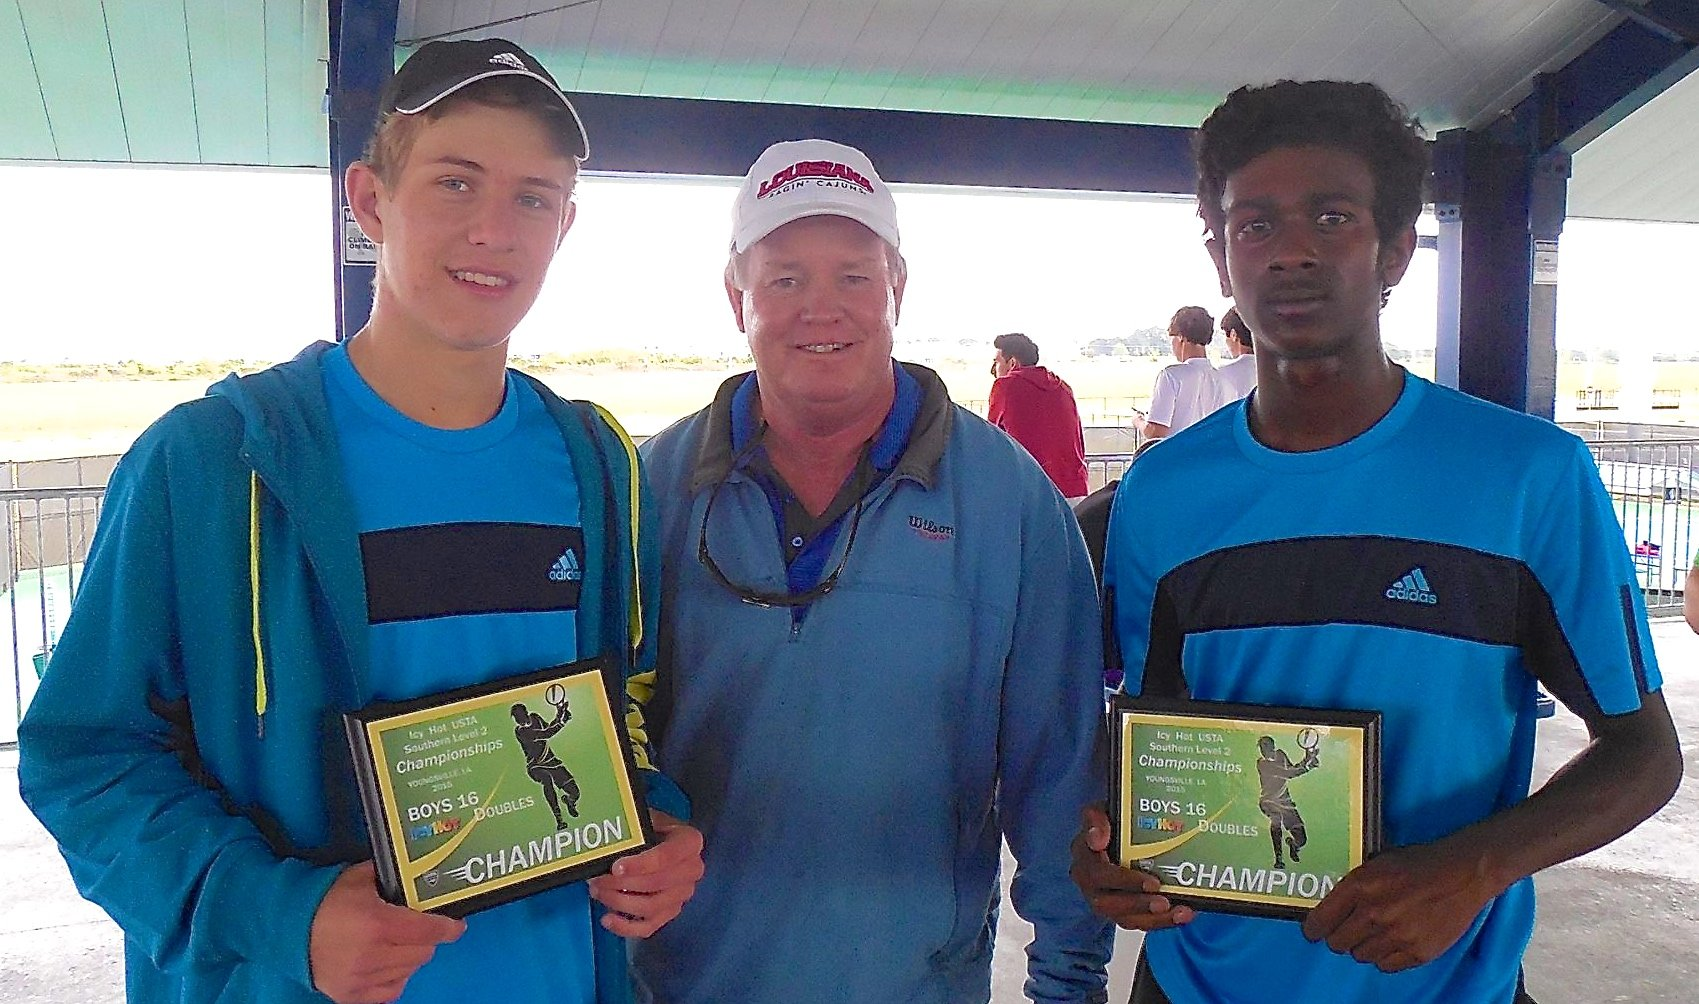 16 Doubles Champions  left: Nick Watson from Baton Rouge, LA,  right: Anil Chakka from Little Rock, AR